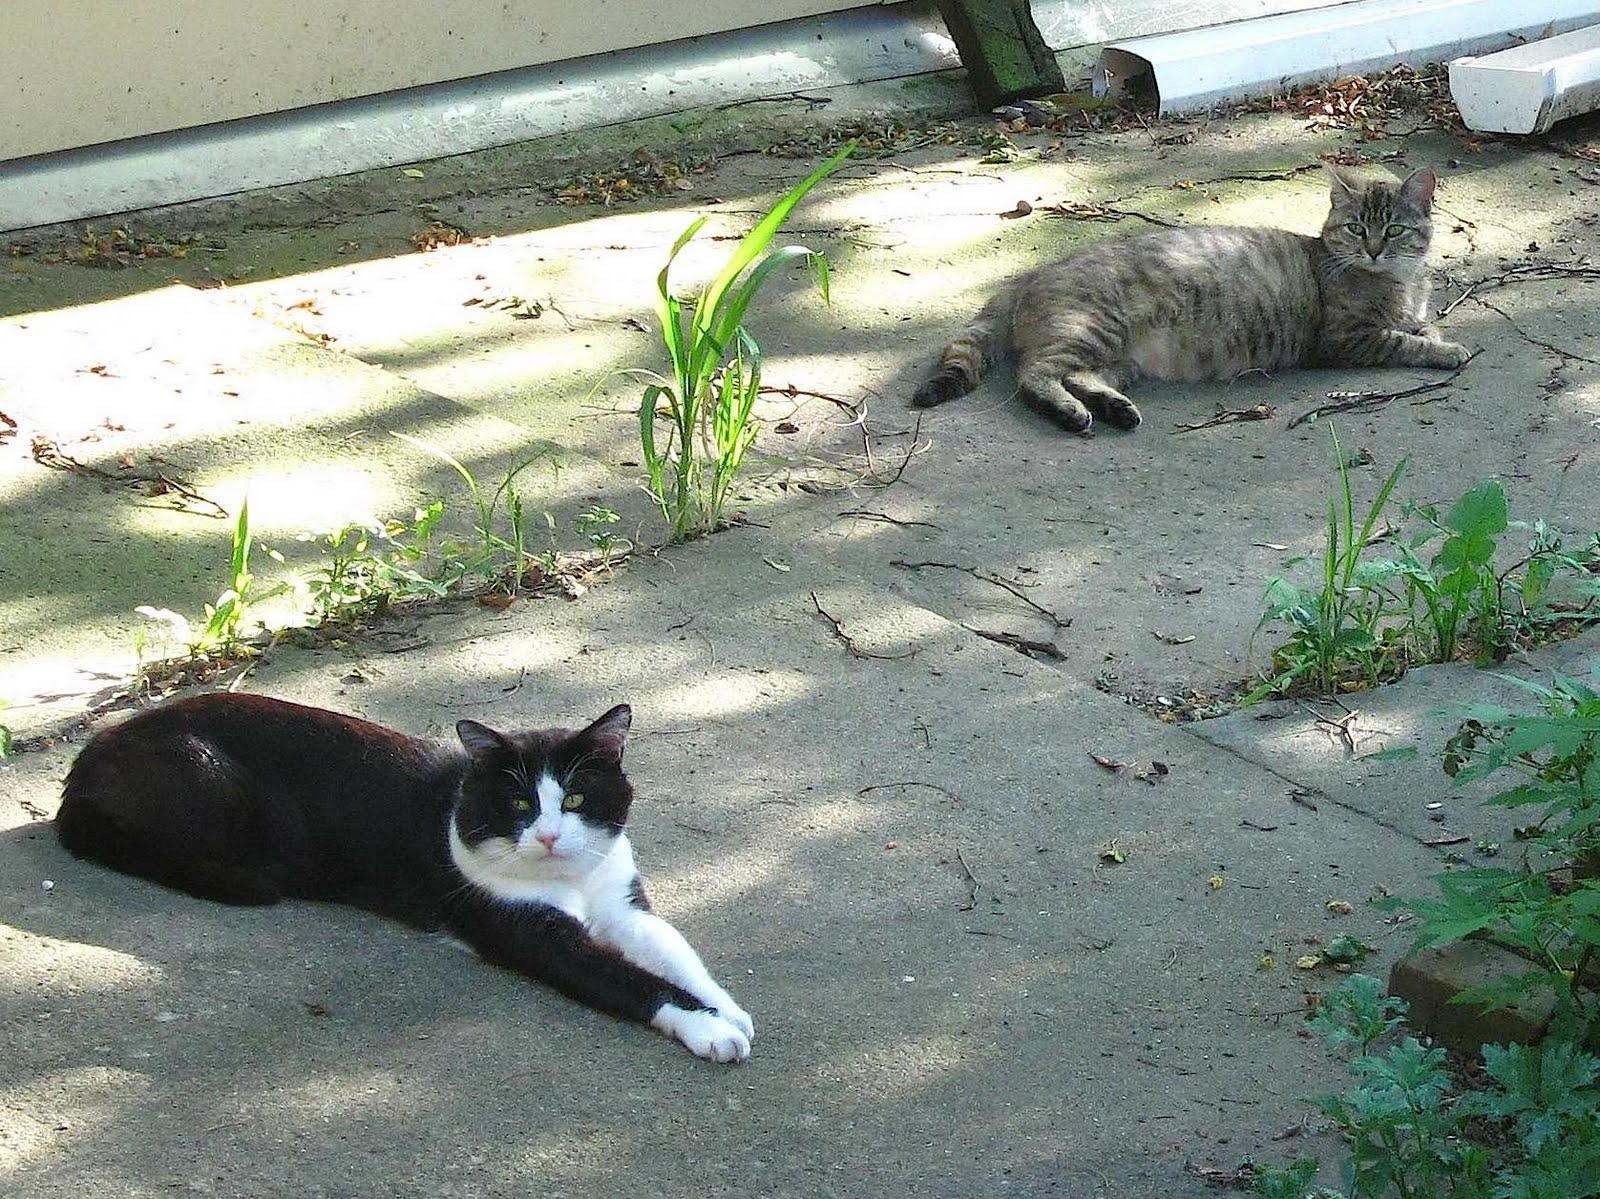 It soon became evident that Dido was pregnant. Uh oh. One pregnant cat leads ...